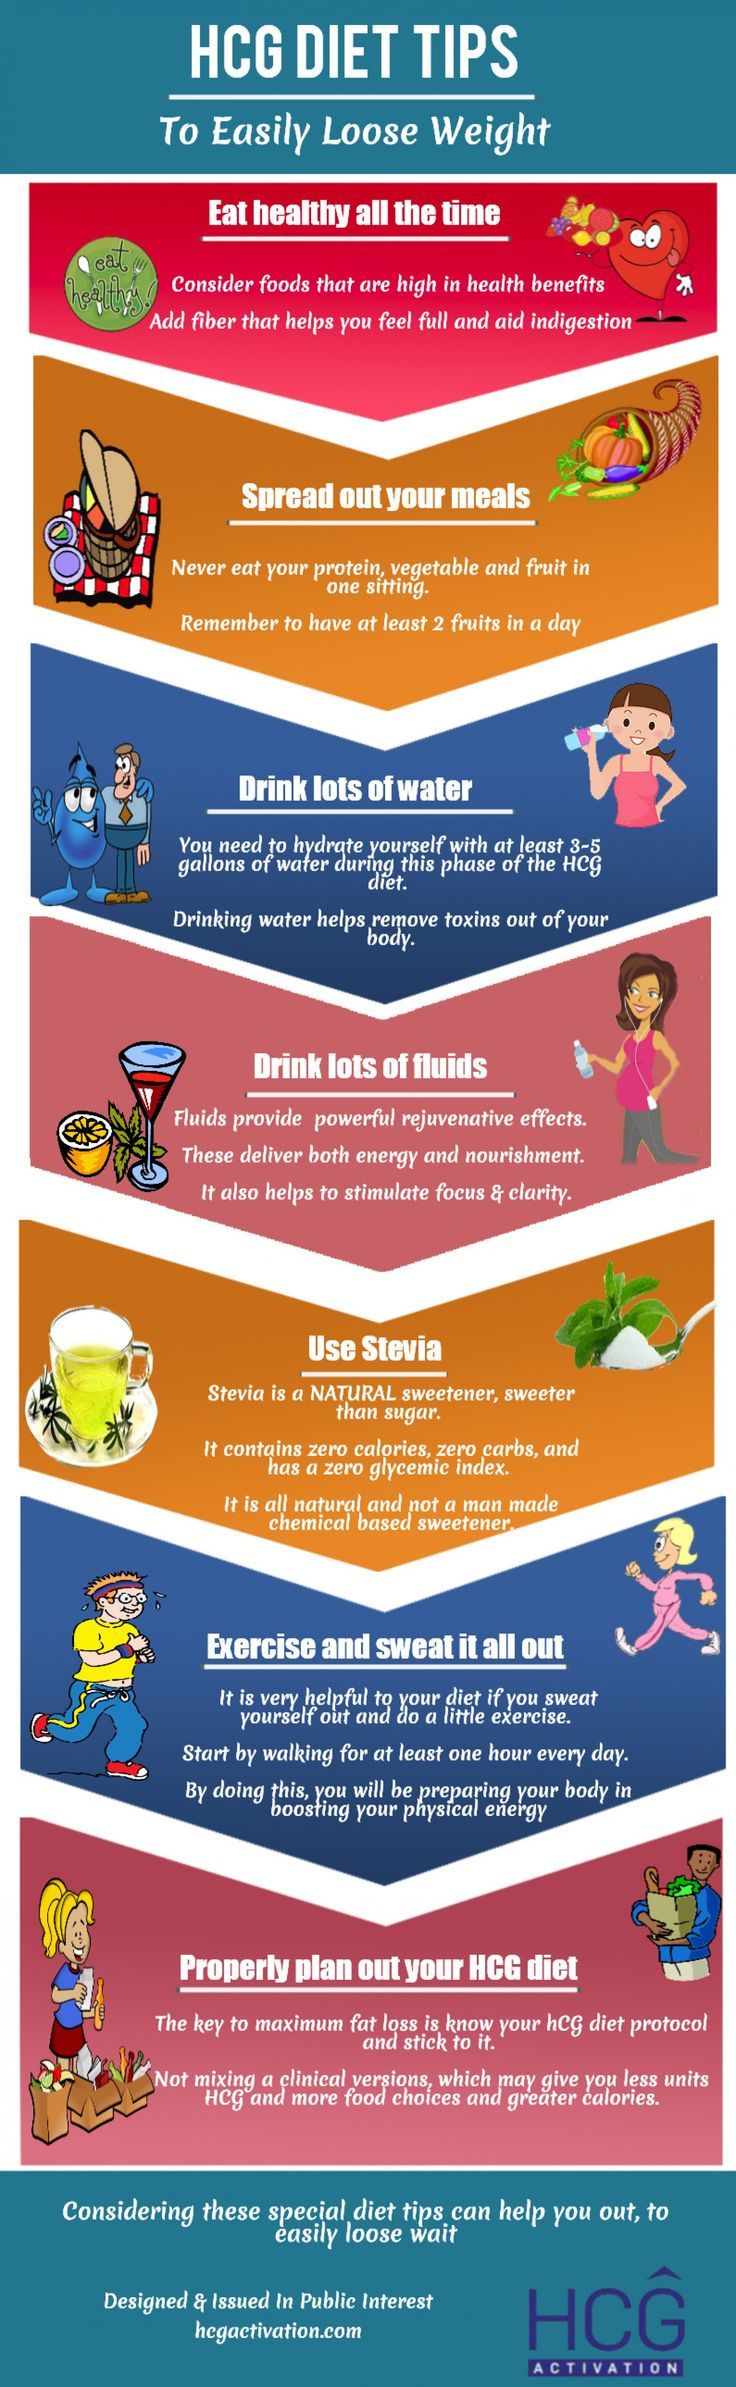 Hcg #Diet Tips #Infographic #Health